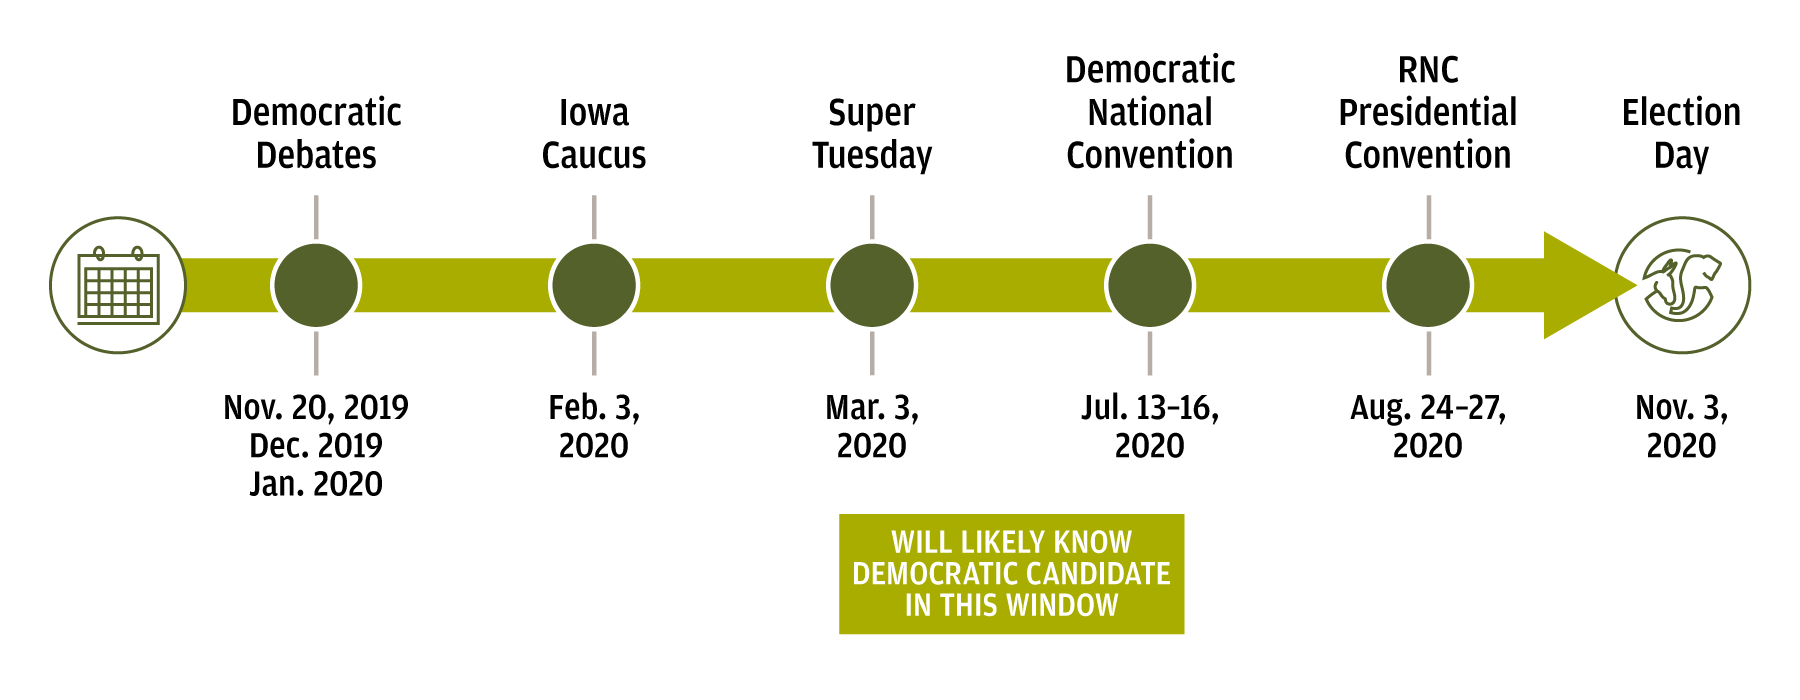 A graphic depicting important dates on the election calendar. Democratic Debates are on November 20, 2019, in December 2019 and January 2020. The Iowa Caucus is on February 3, 2020. Super Tuesday is on March 3, 2020. The Democratic National Convention is from July 13-16, 2020. The RNC Presidential Convention is from August 24-27, 2020. And Election Day is on November 3, 2020. The Democratic candidate is likely to be made known sometime between March 3, 2020 and July 16, 2020.